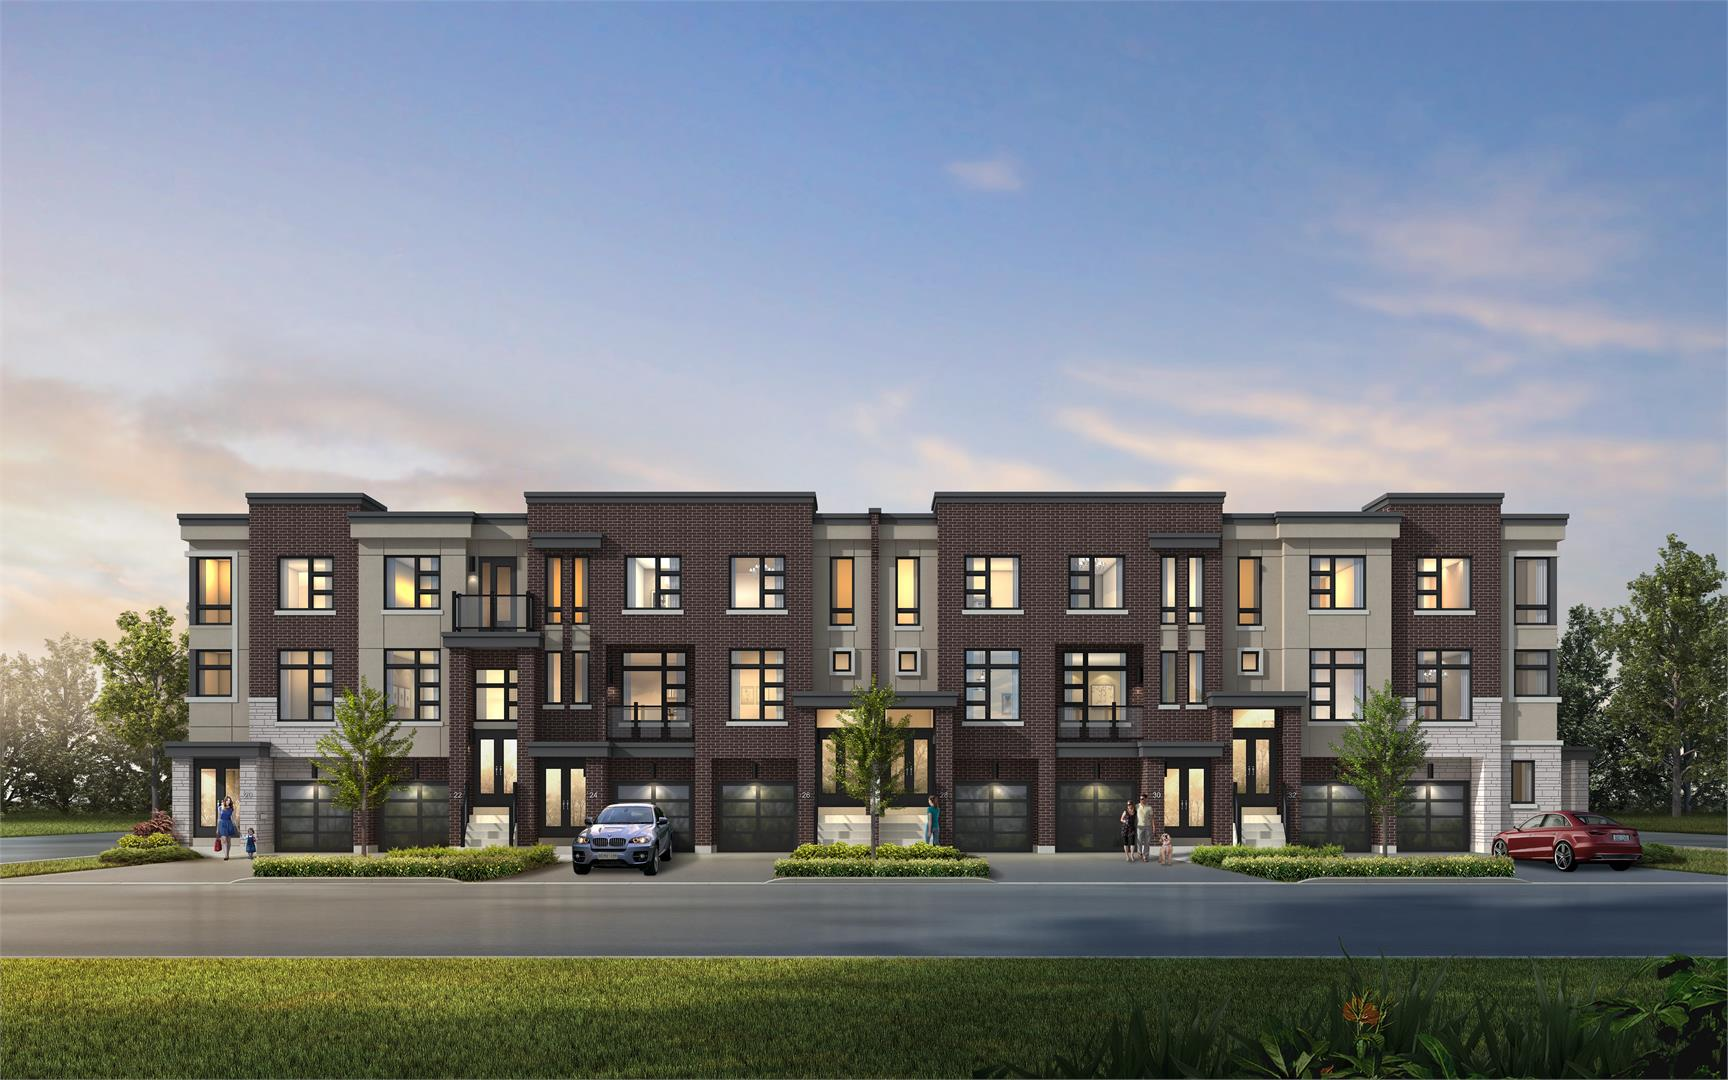 NuTowns_Exterior4